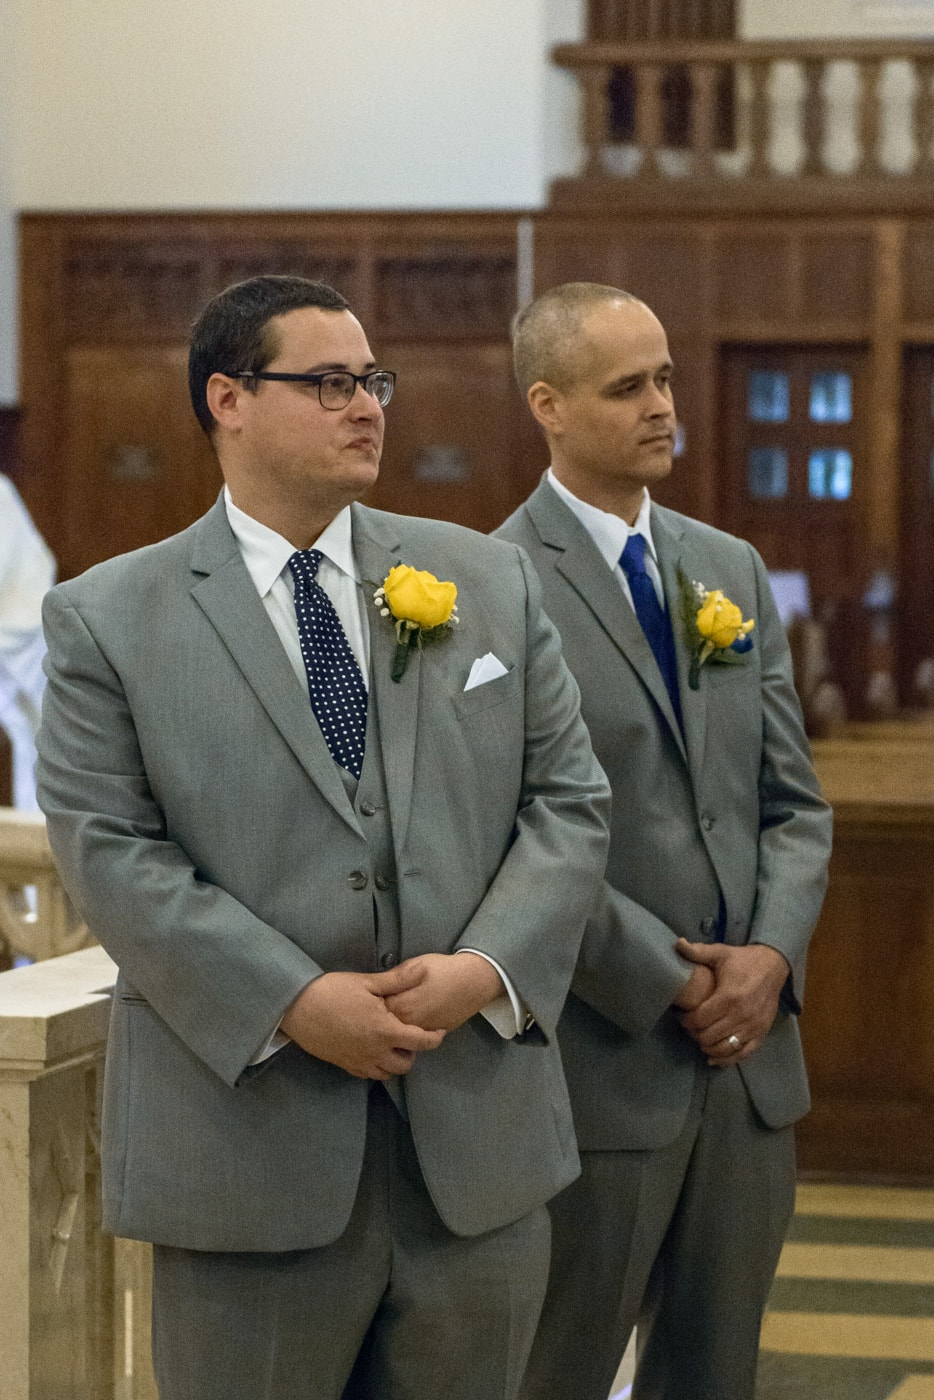 The groom gets emotional as he sees his bride walk down the aisle at St James Catholic Church in Falls Church, Virginia